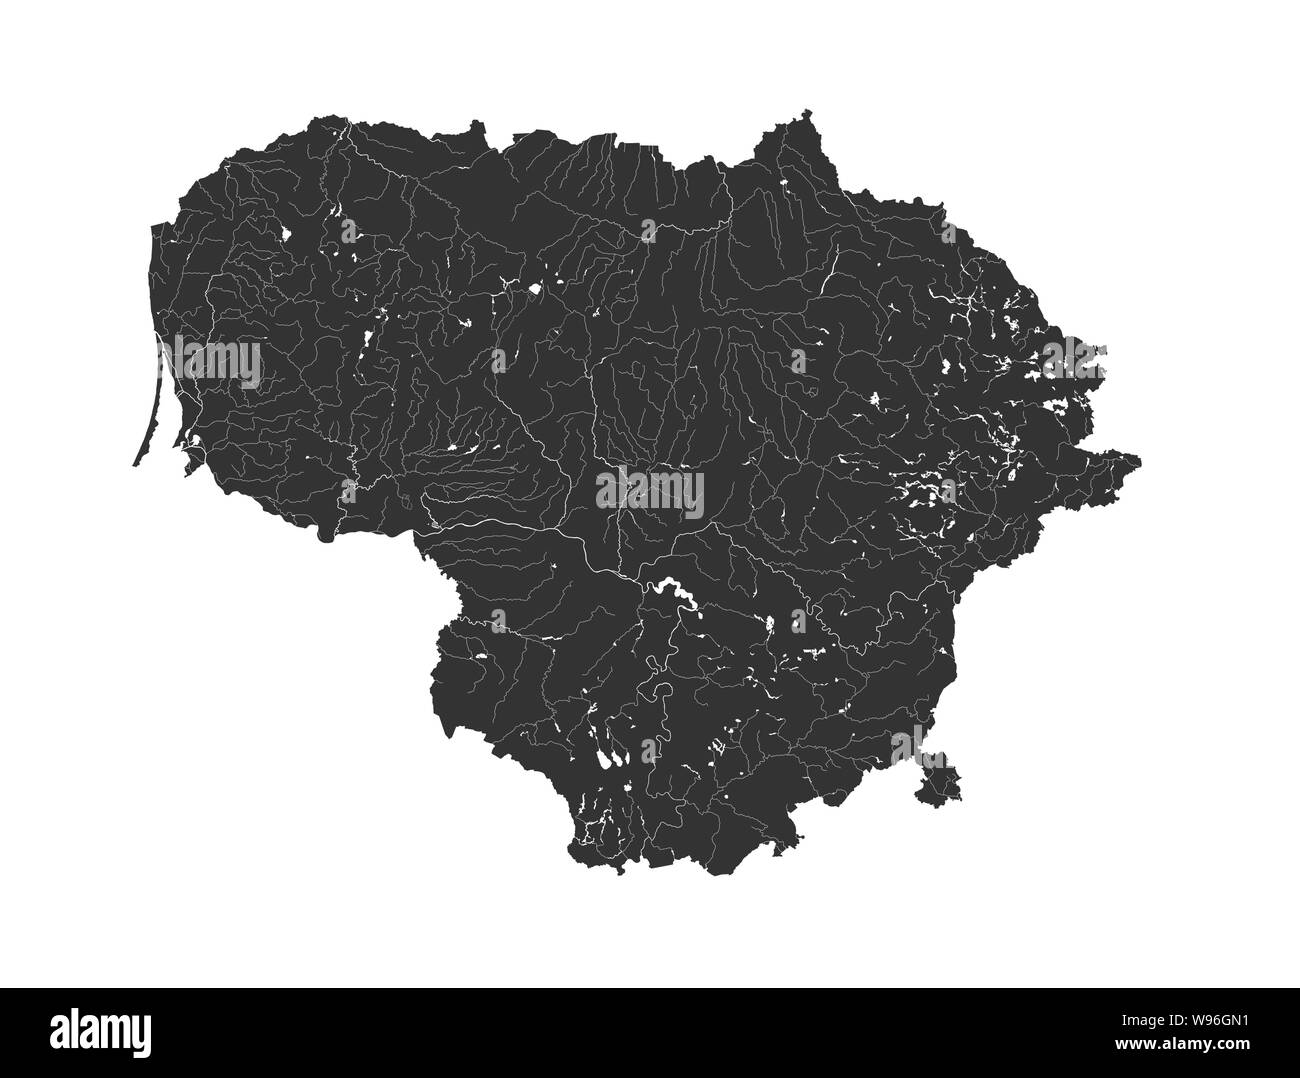 Baltic states - map of Lithuania. Hand made. Rivers and lakes are shown. Please look at my other images of cartographic series - they are all very det Stock Vector